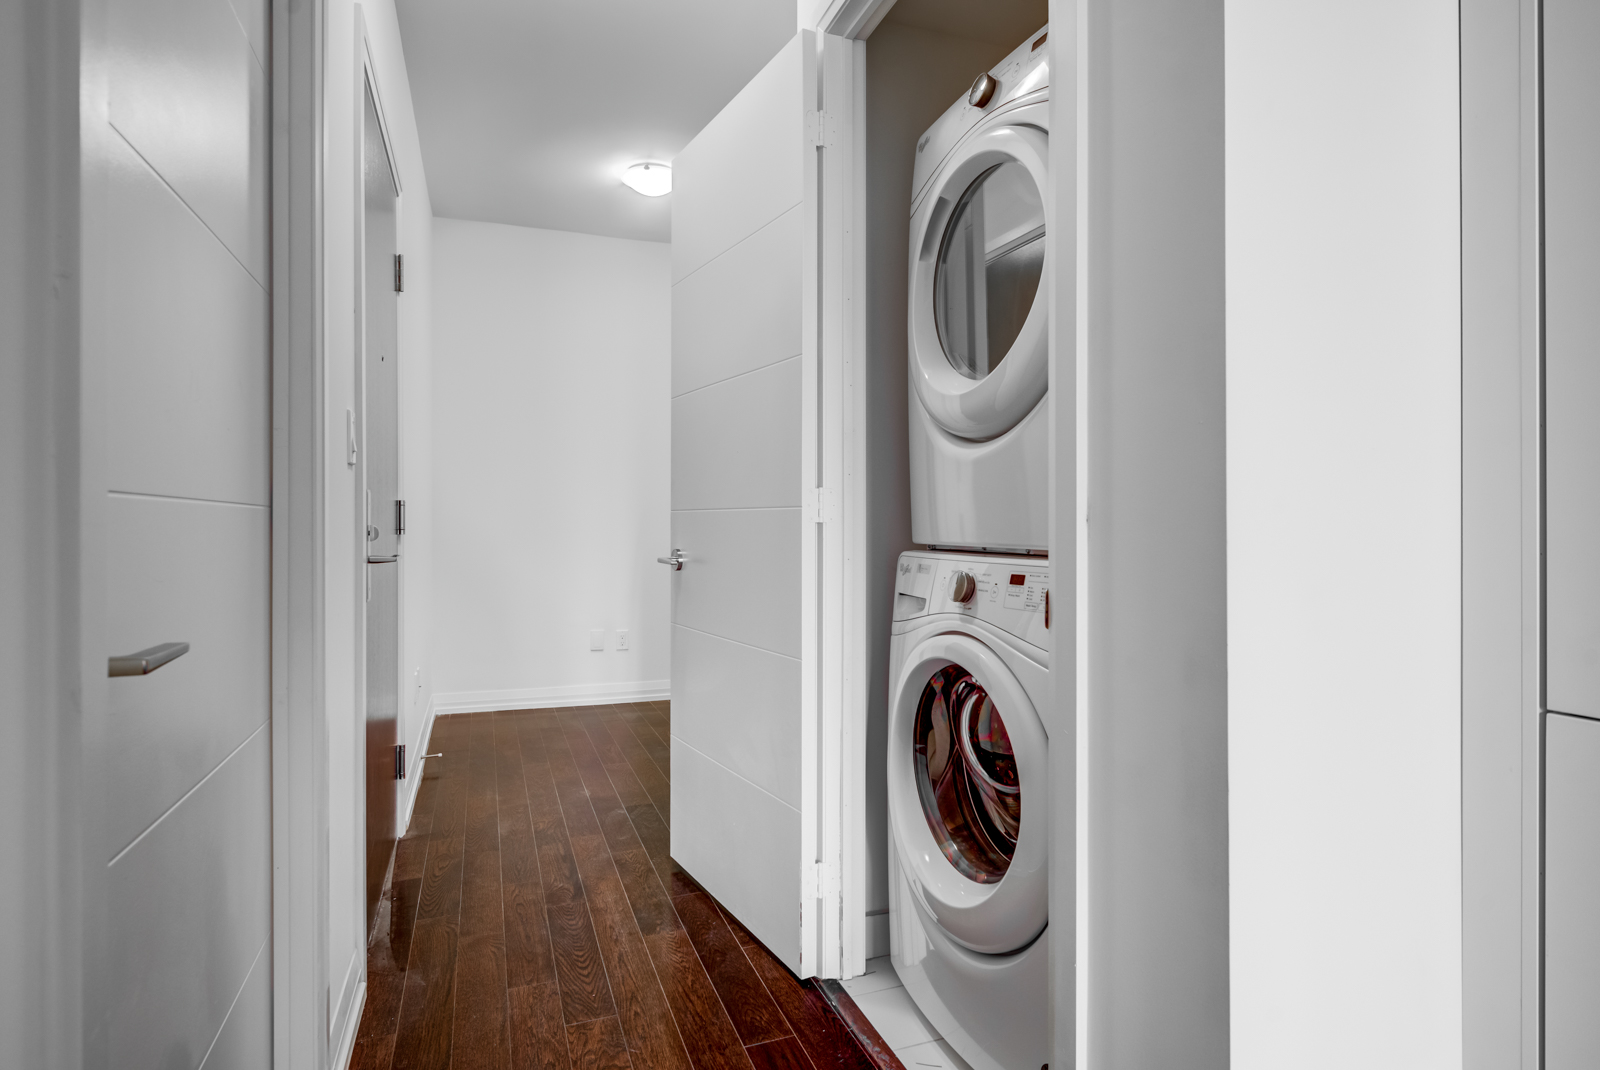 Unit 620's den and laundry room.